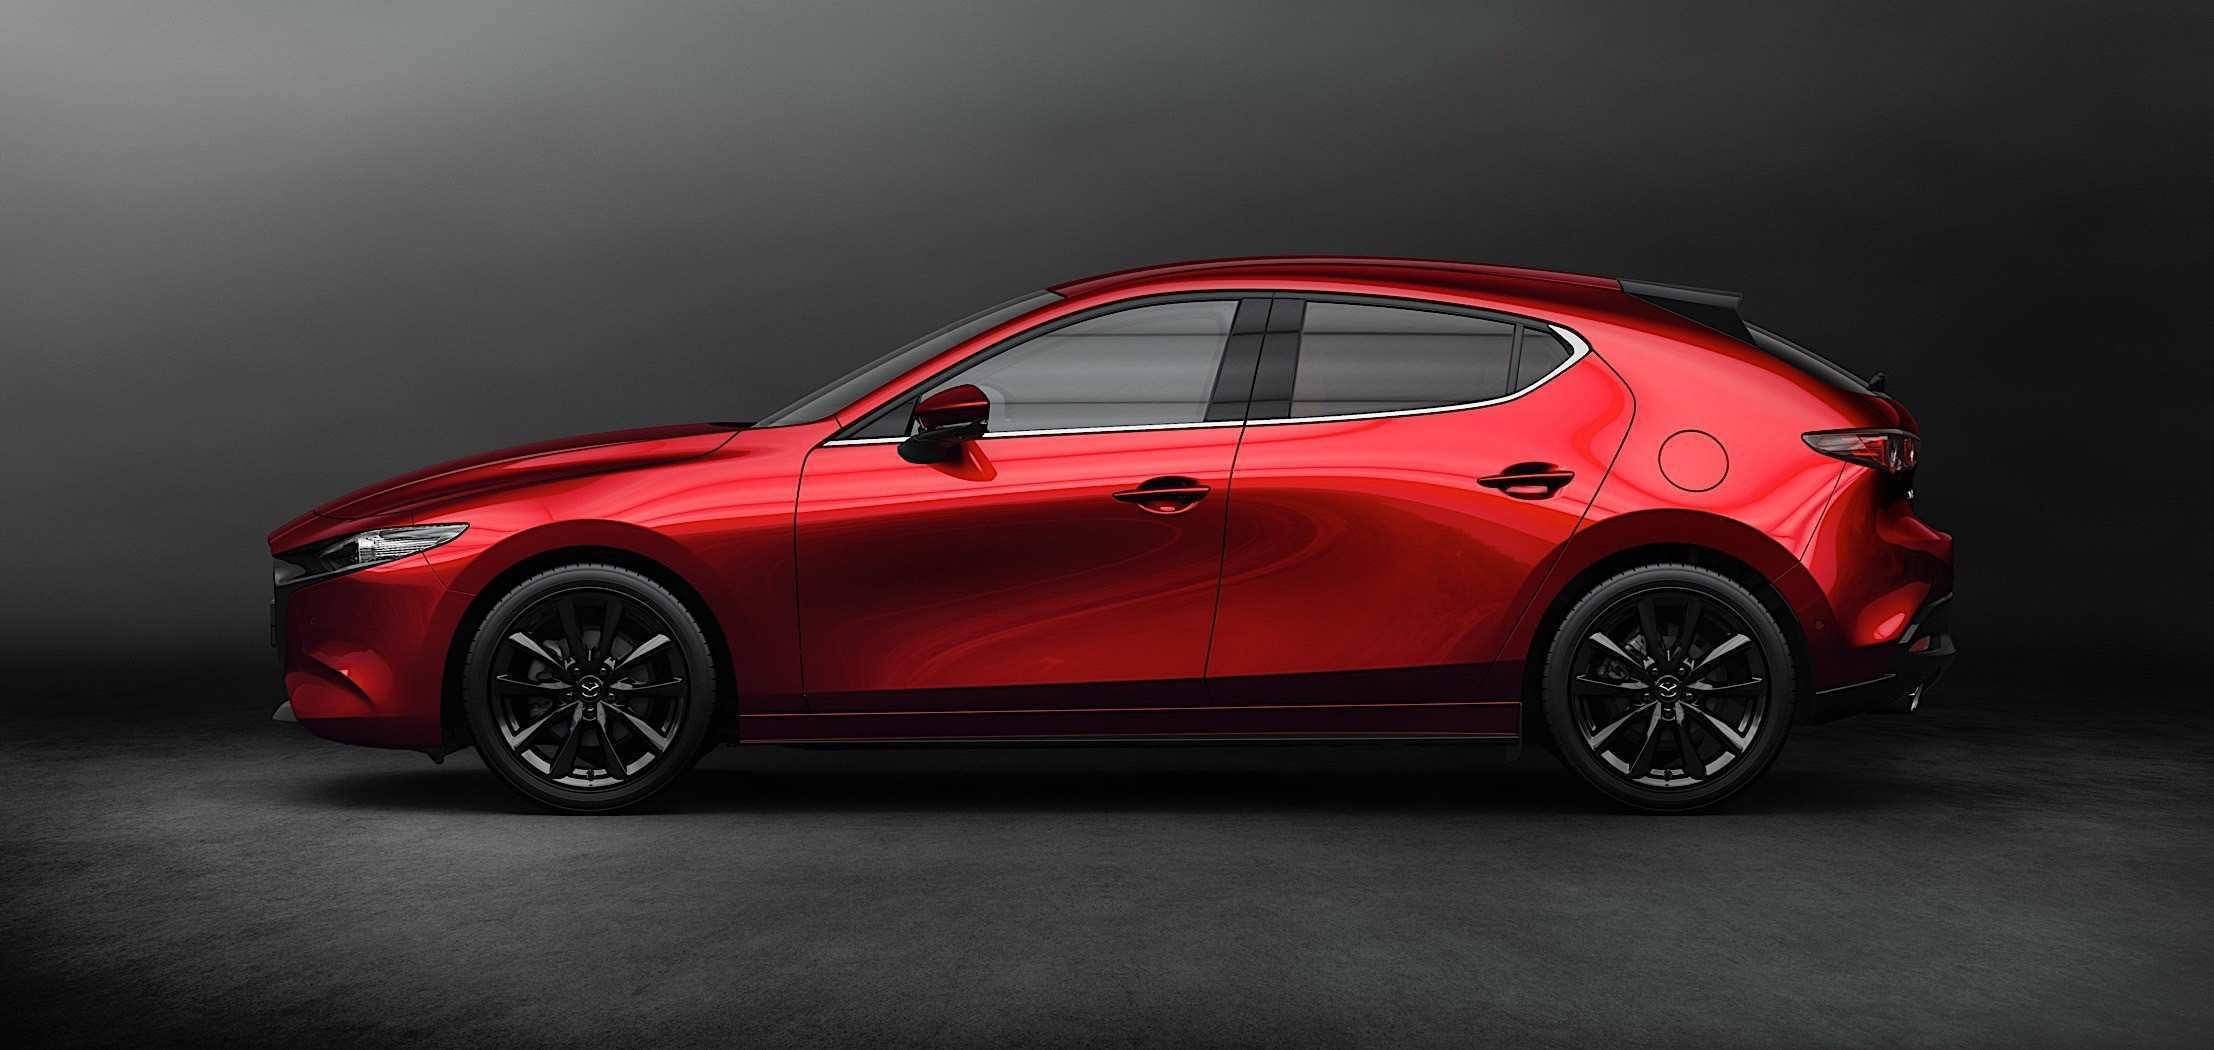 92 All New 2020 Mazda 3 Update Price Design And Review